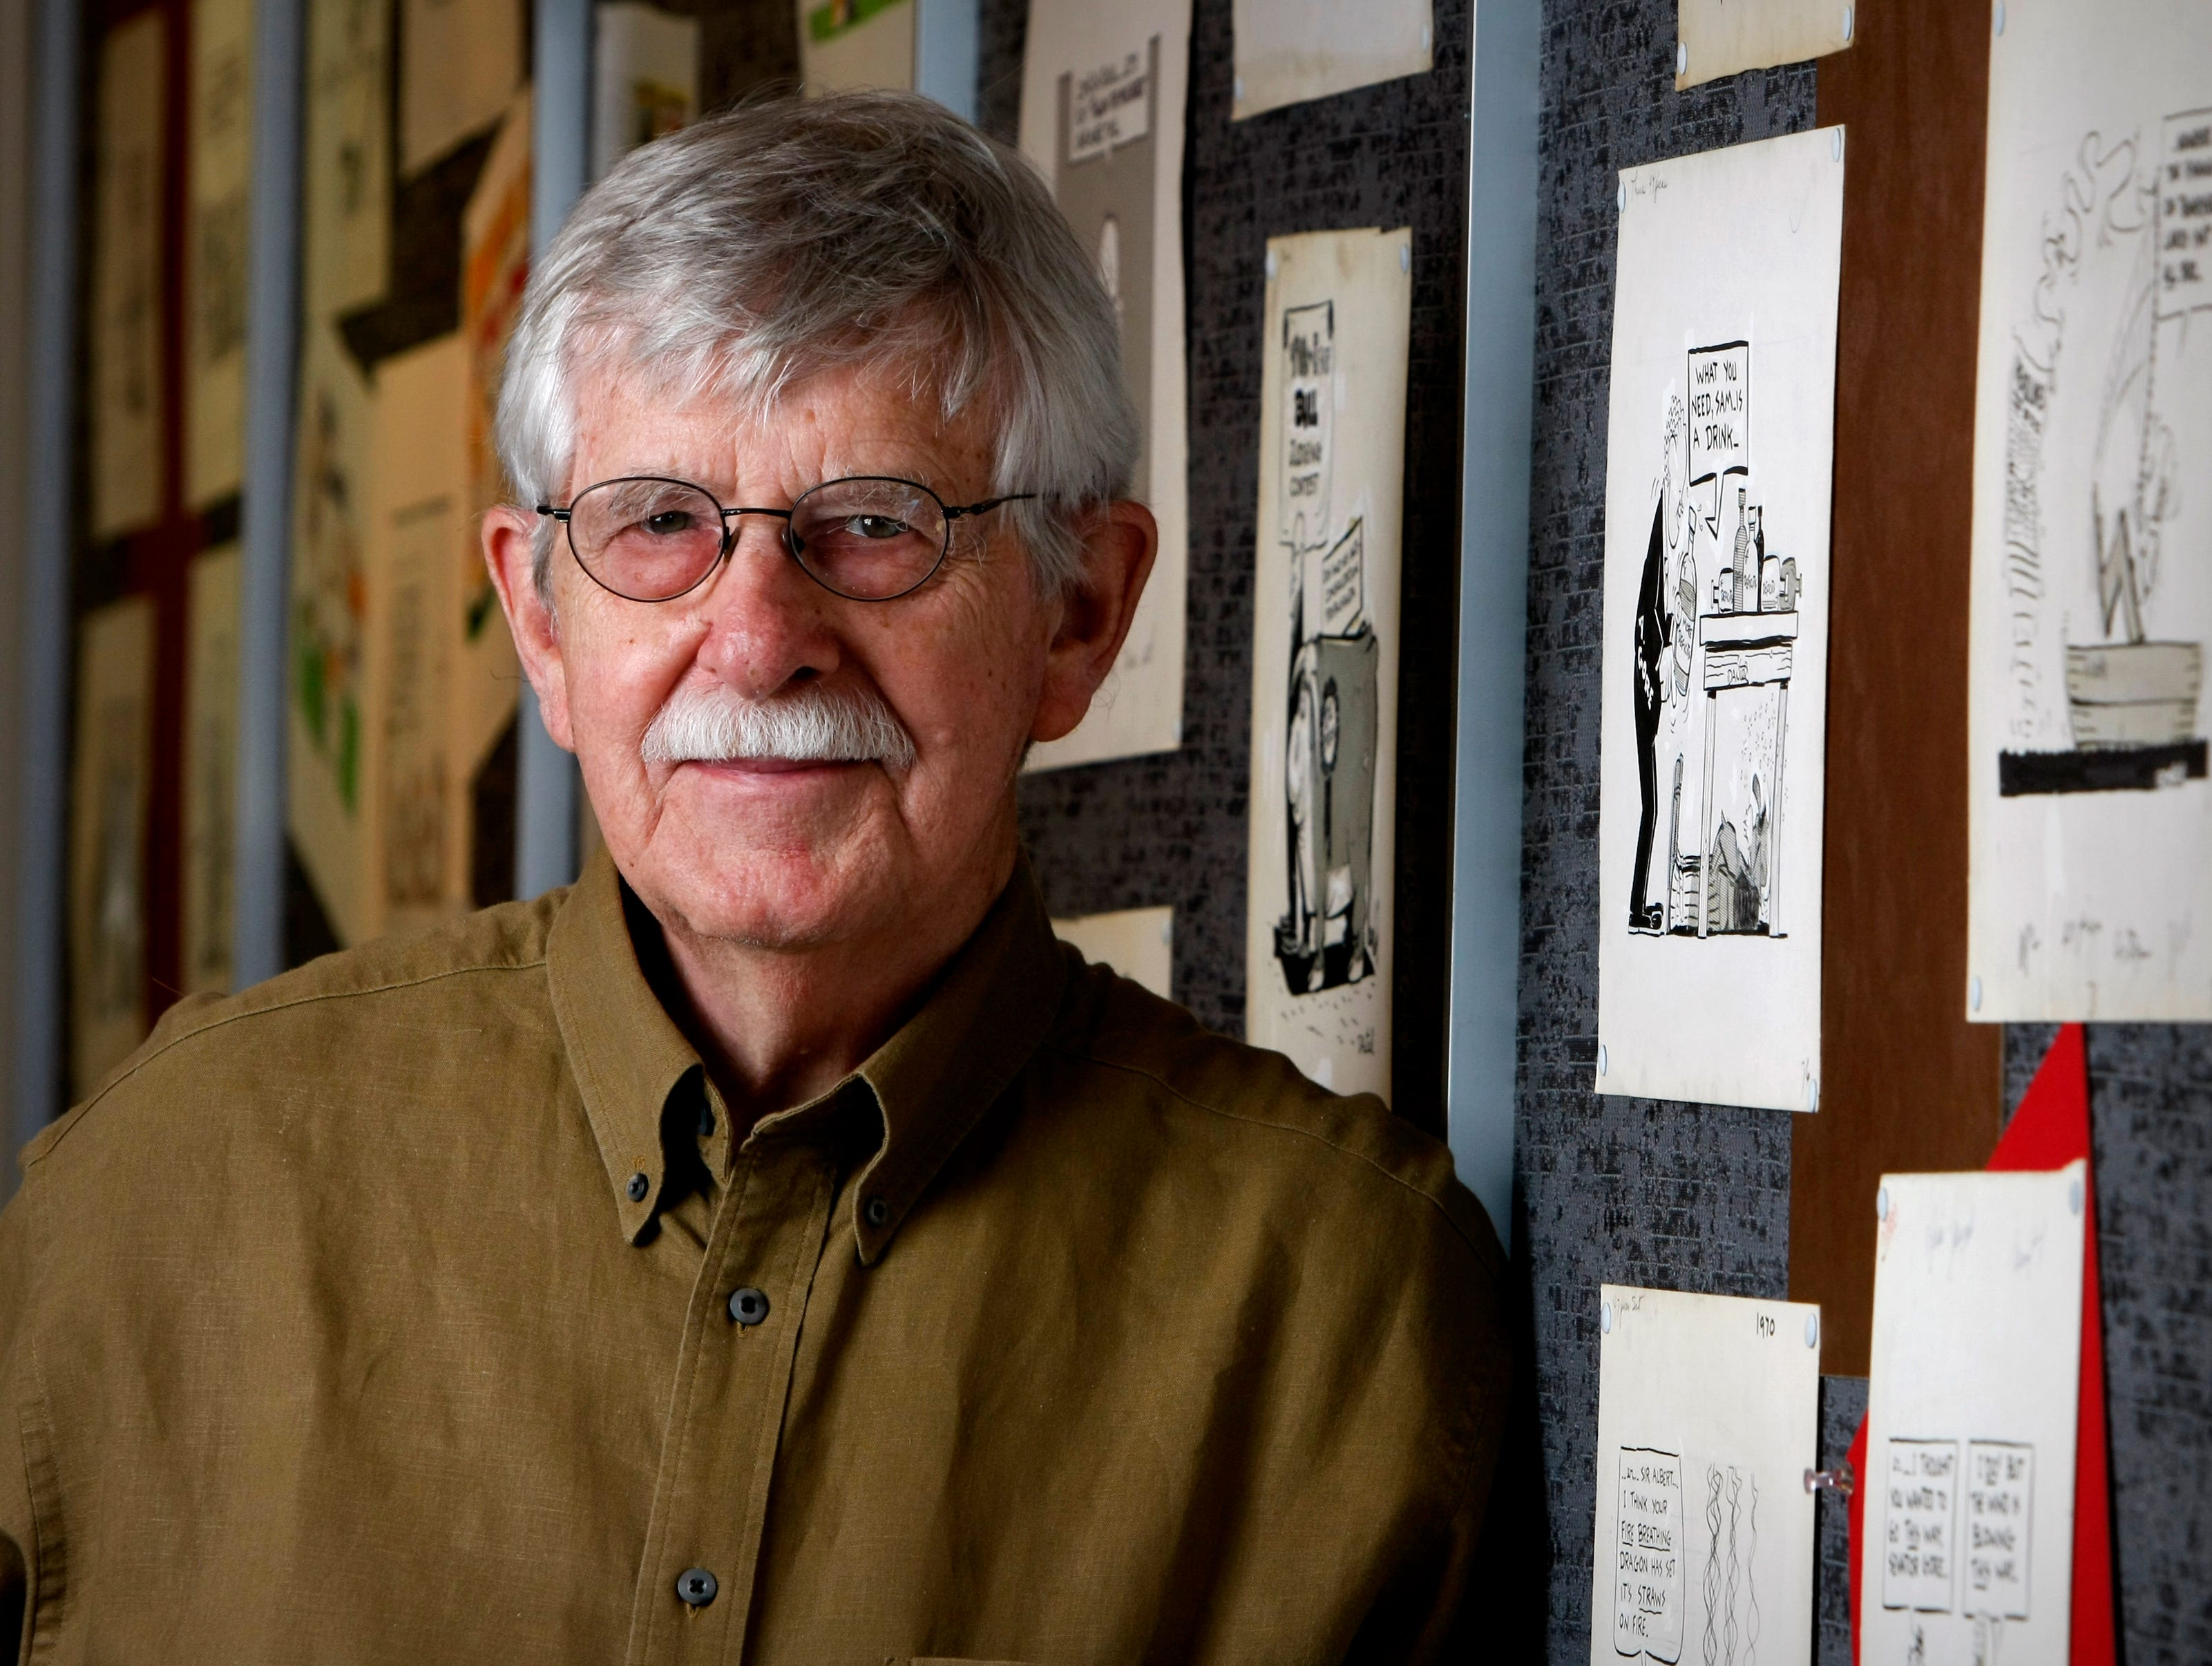 Charlie Daniel, Editorial Cartoonist for the News Sentinel, stands next to his original drawings that are on display at the News Sentinel to honor his 50 year career as a cartoonist in Knoxville. Tuesday, July 1, 2008